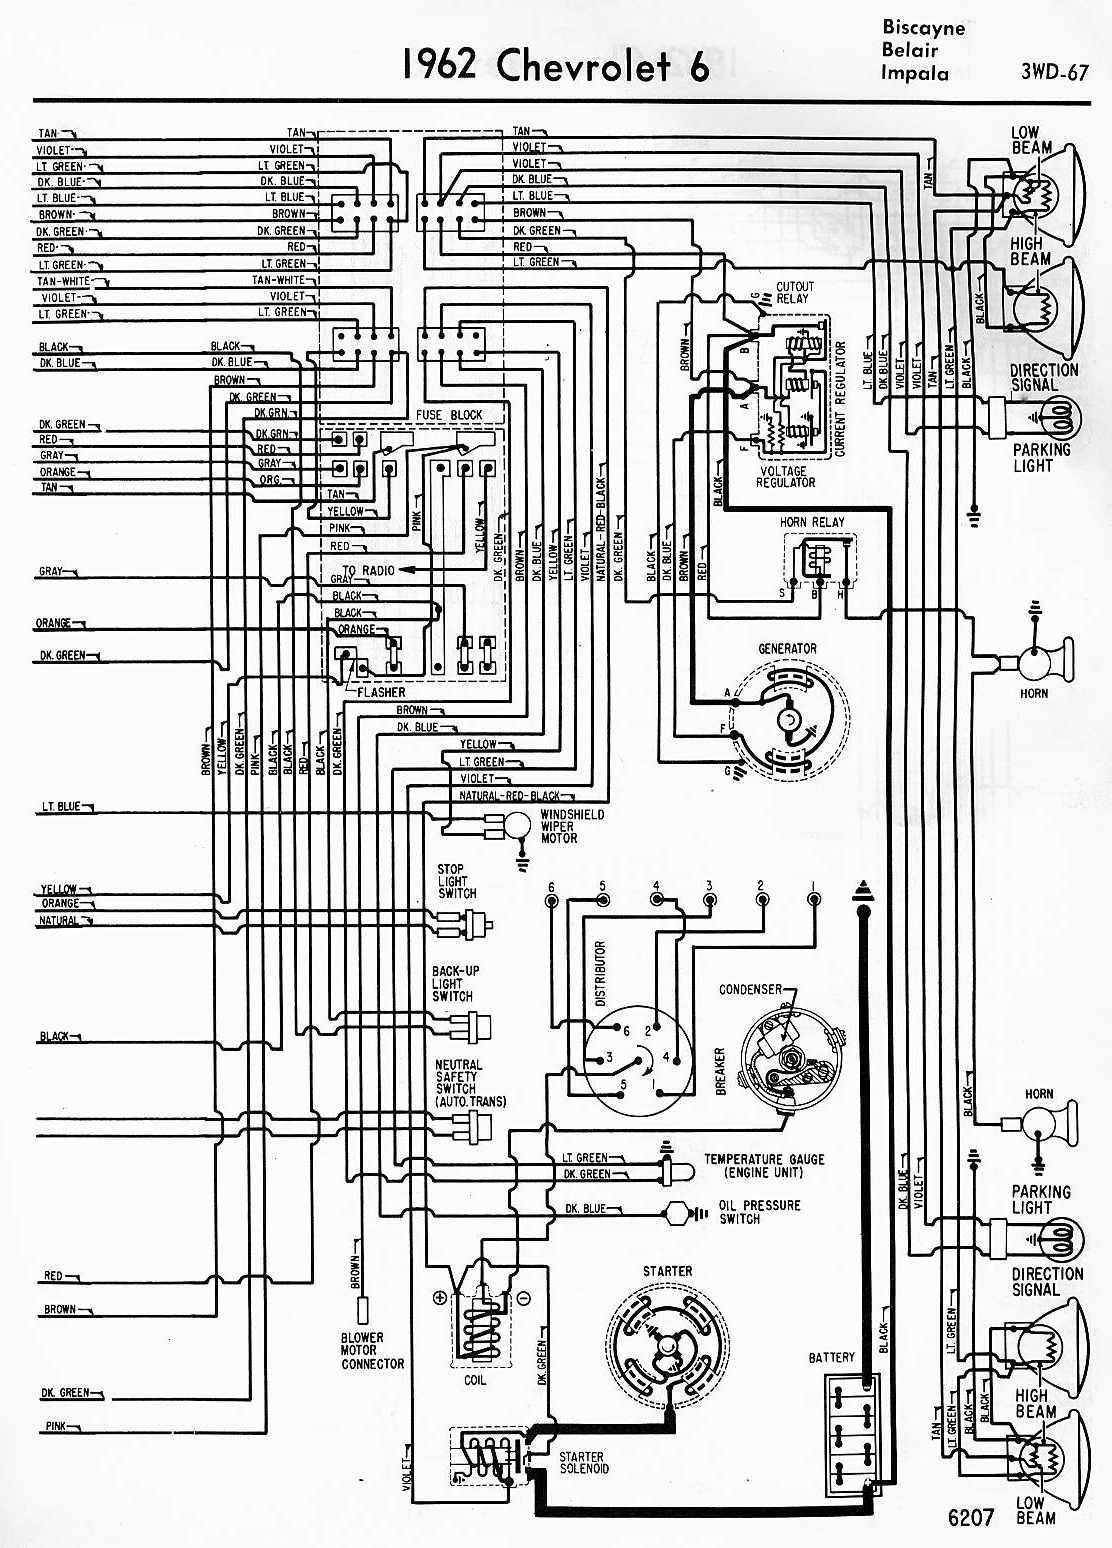 hight resolution of 1966 chevrolet impala wiring diagram free picture wiring diagram rh 1 16 jacobwinterstein com 2002 impala